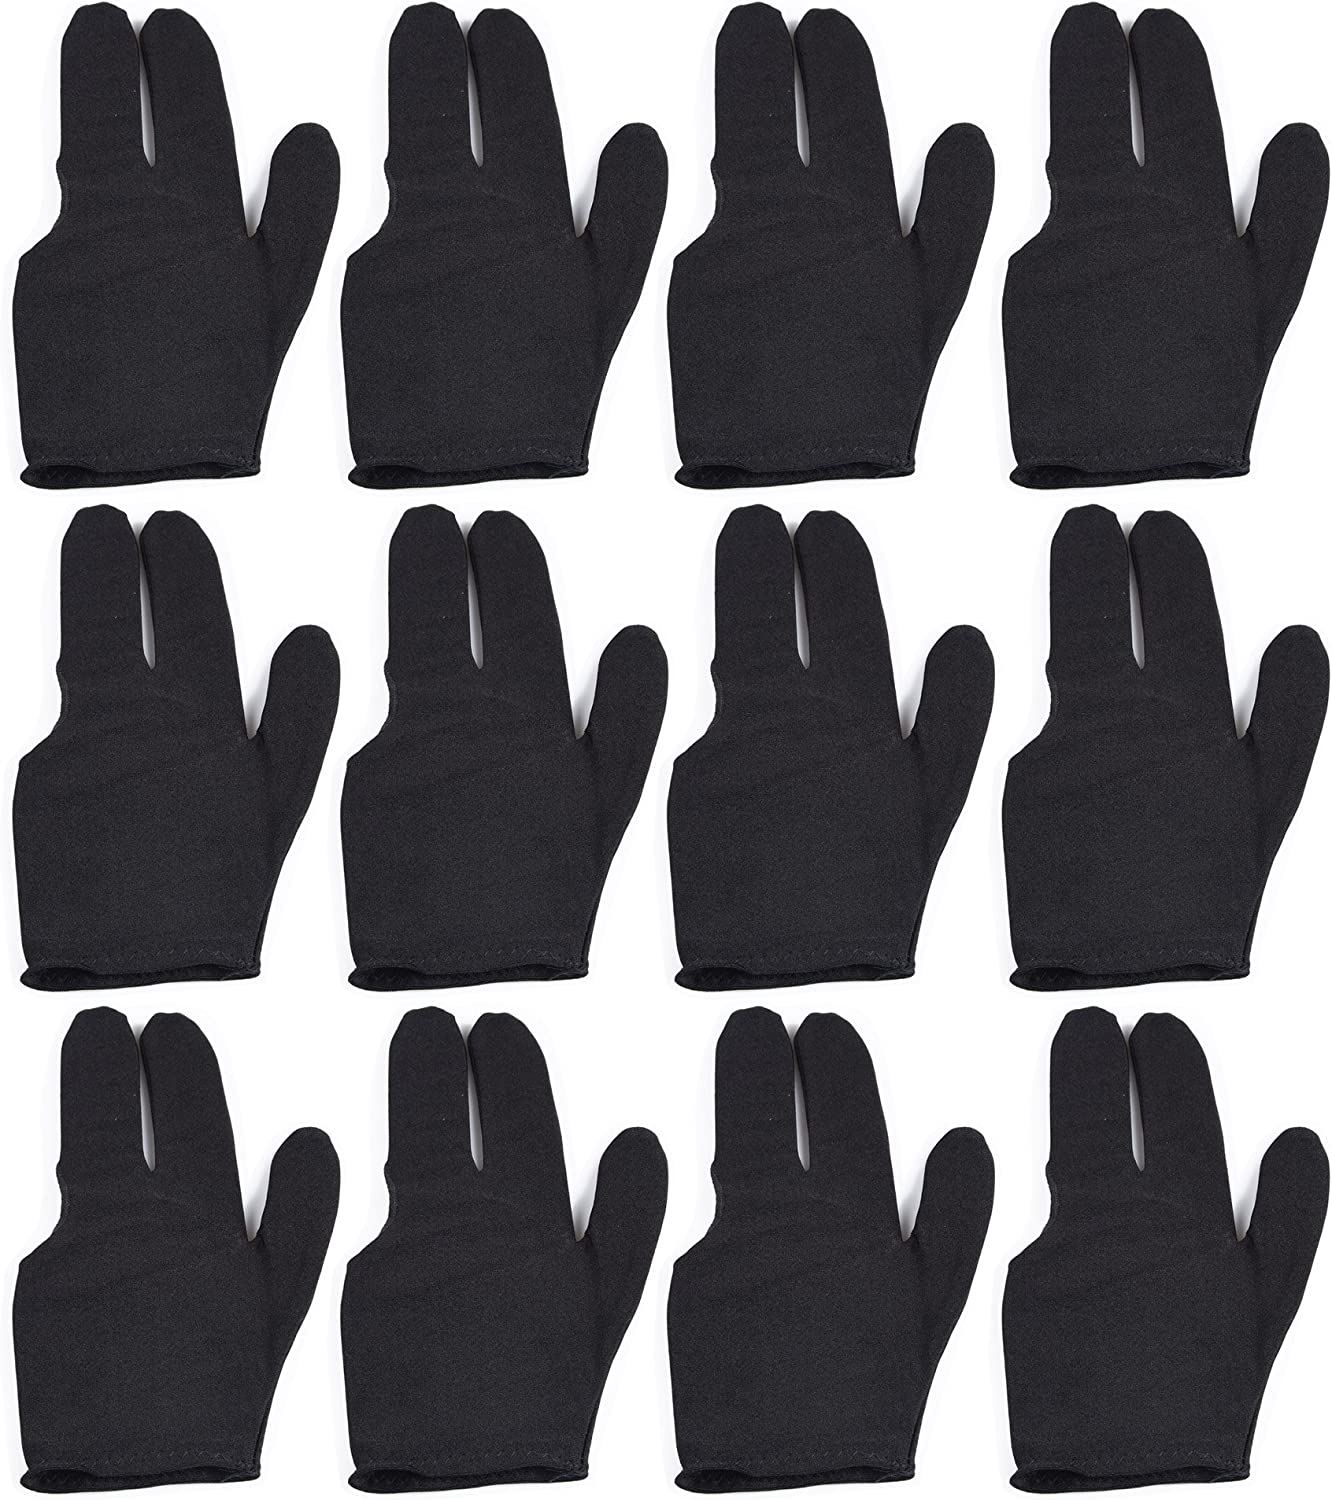 Black T/&R sports Billiard Glove 3 Fingers Show Pool Cue Gloves Pack of 12 Pieces